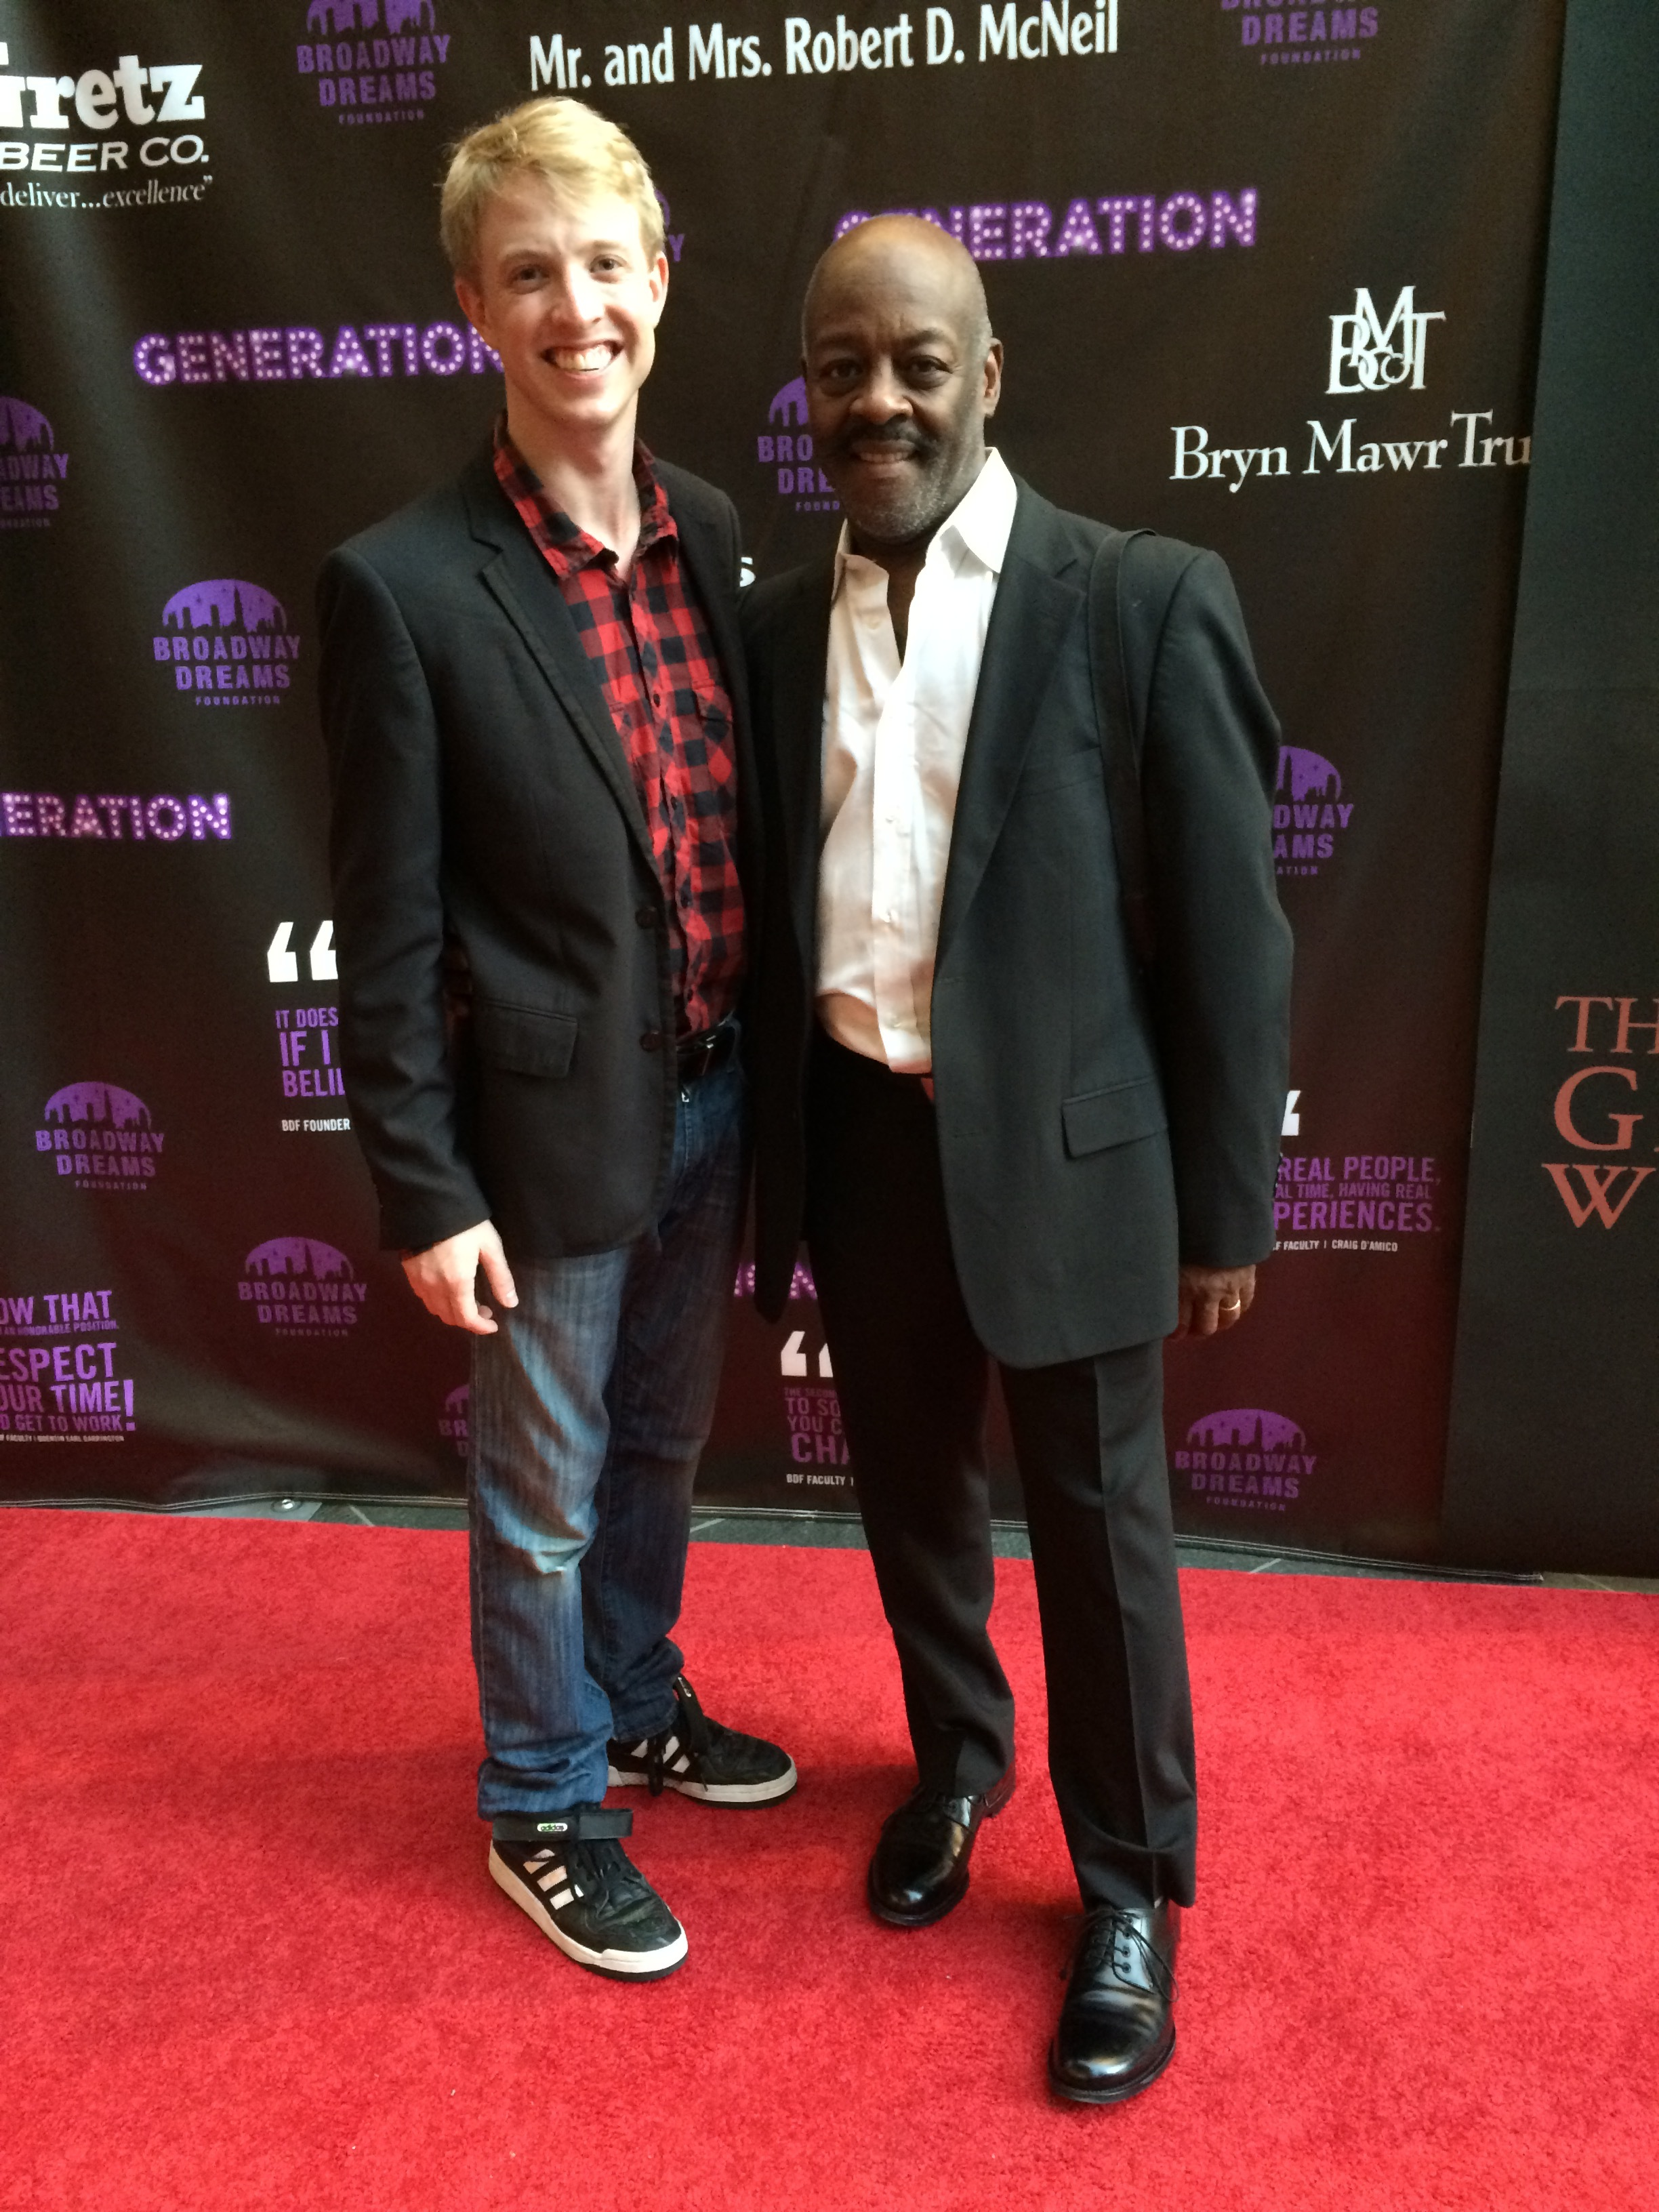 With director Otis Sallid at a Broadway Dreams event in 2014.